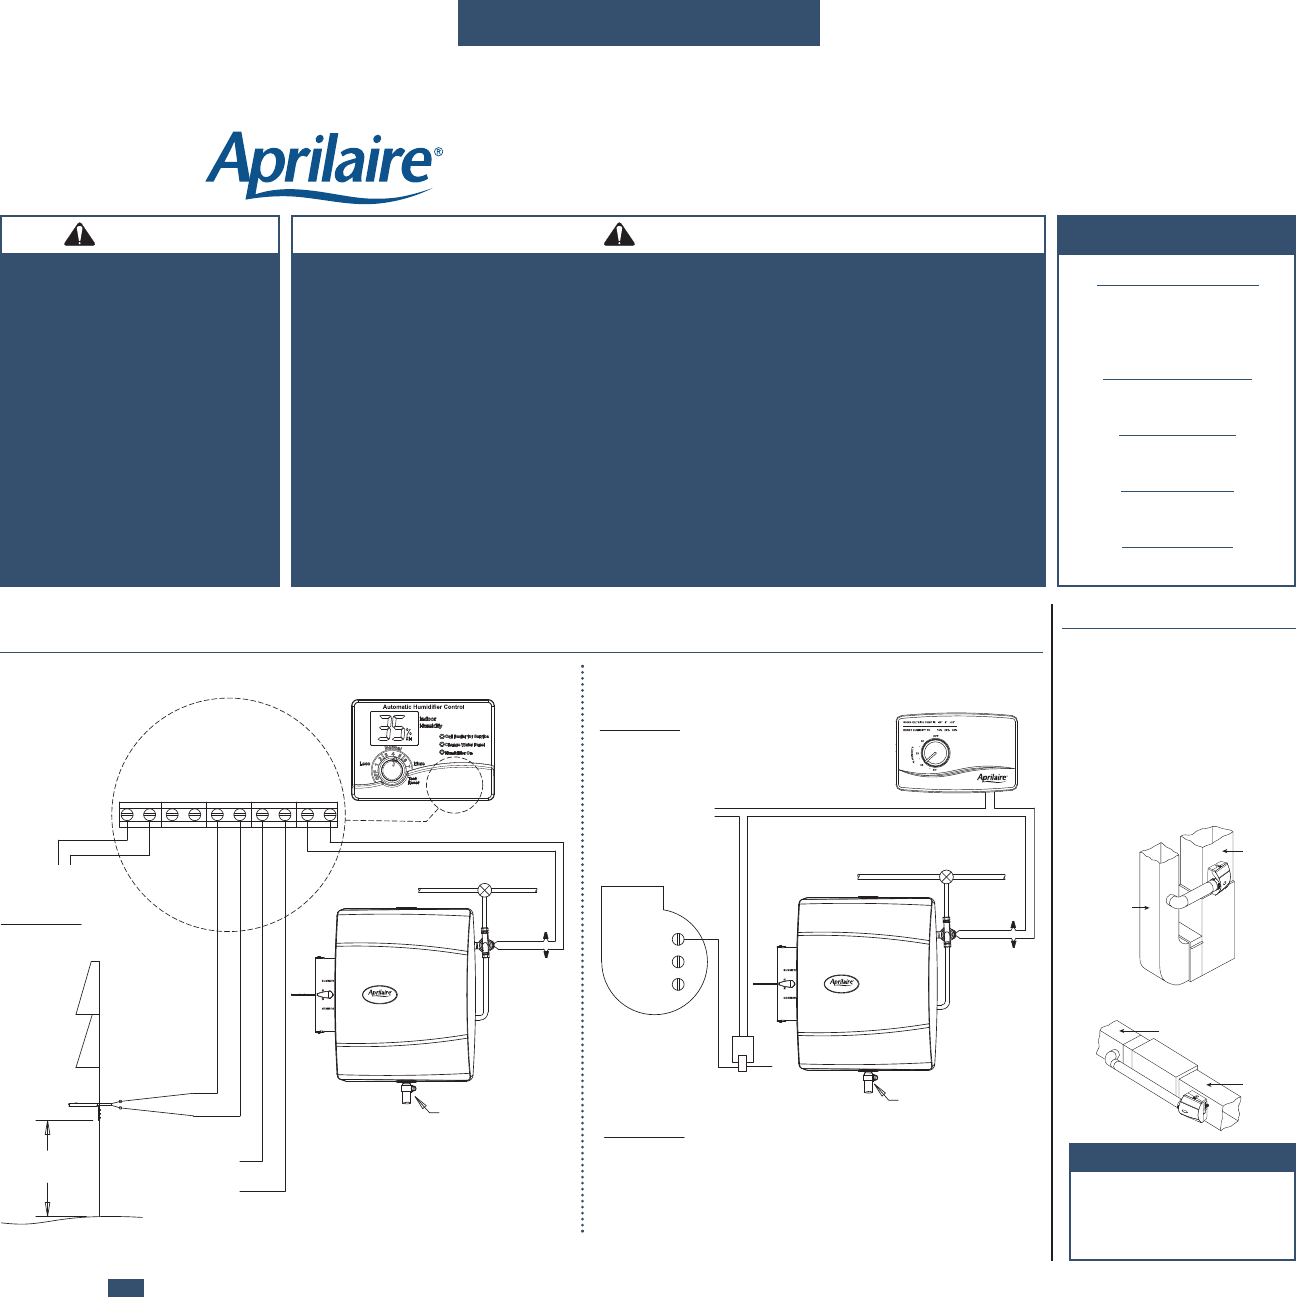 Aprilaire 558 Wiring Diagram - Trusted Schematic Diagrams •